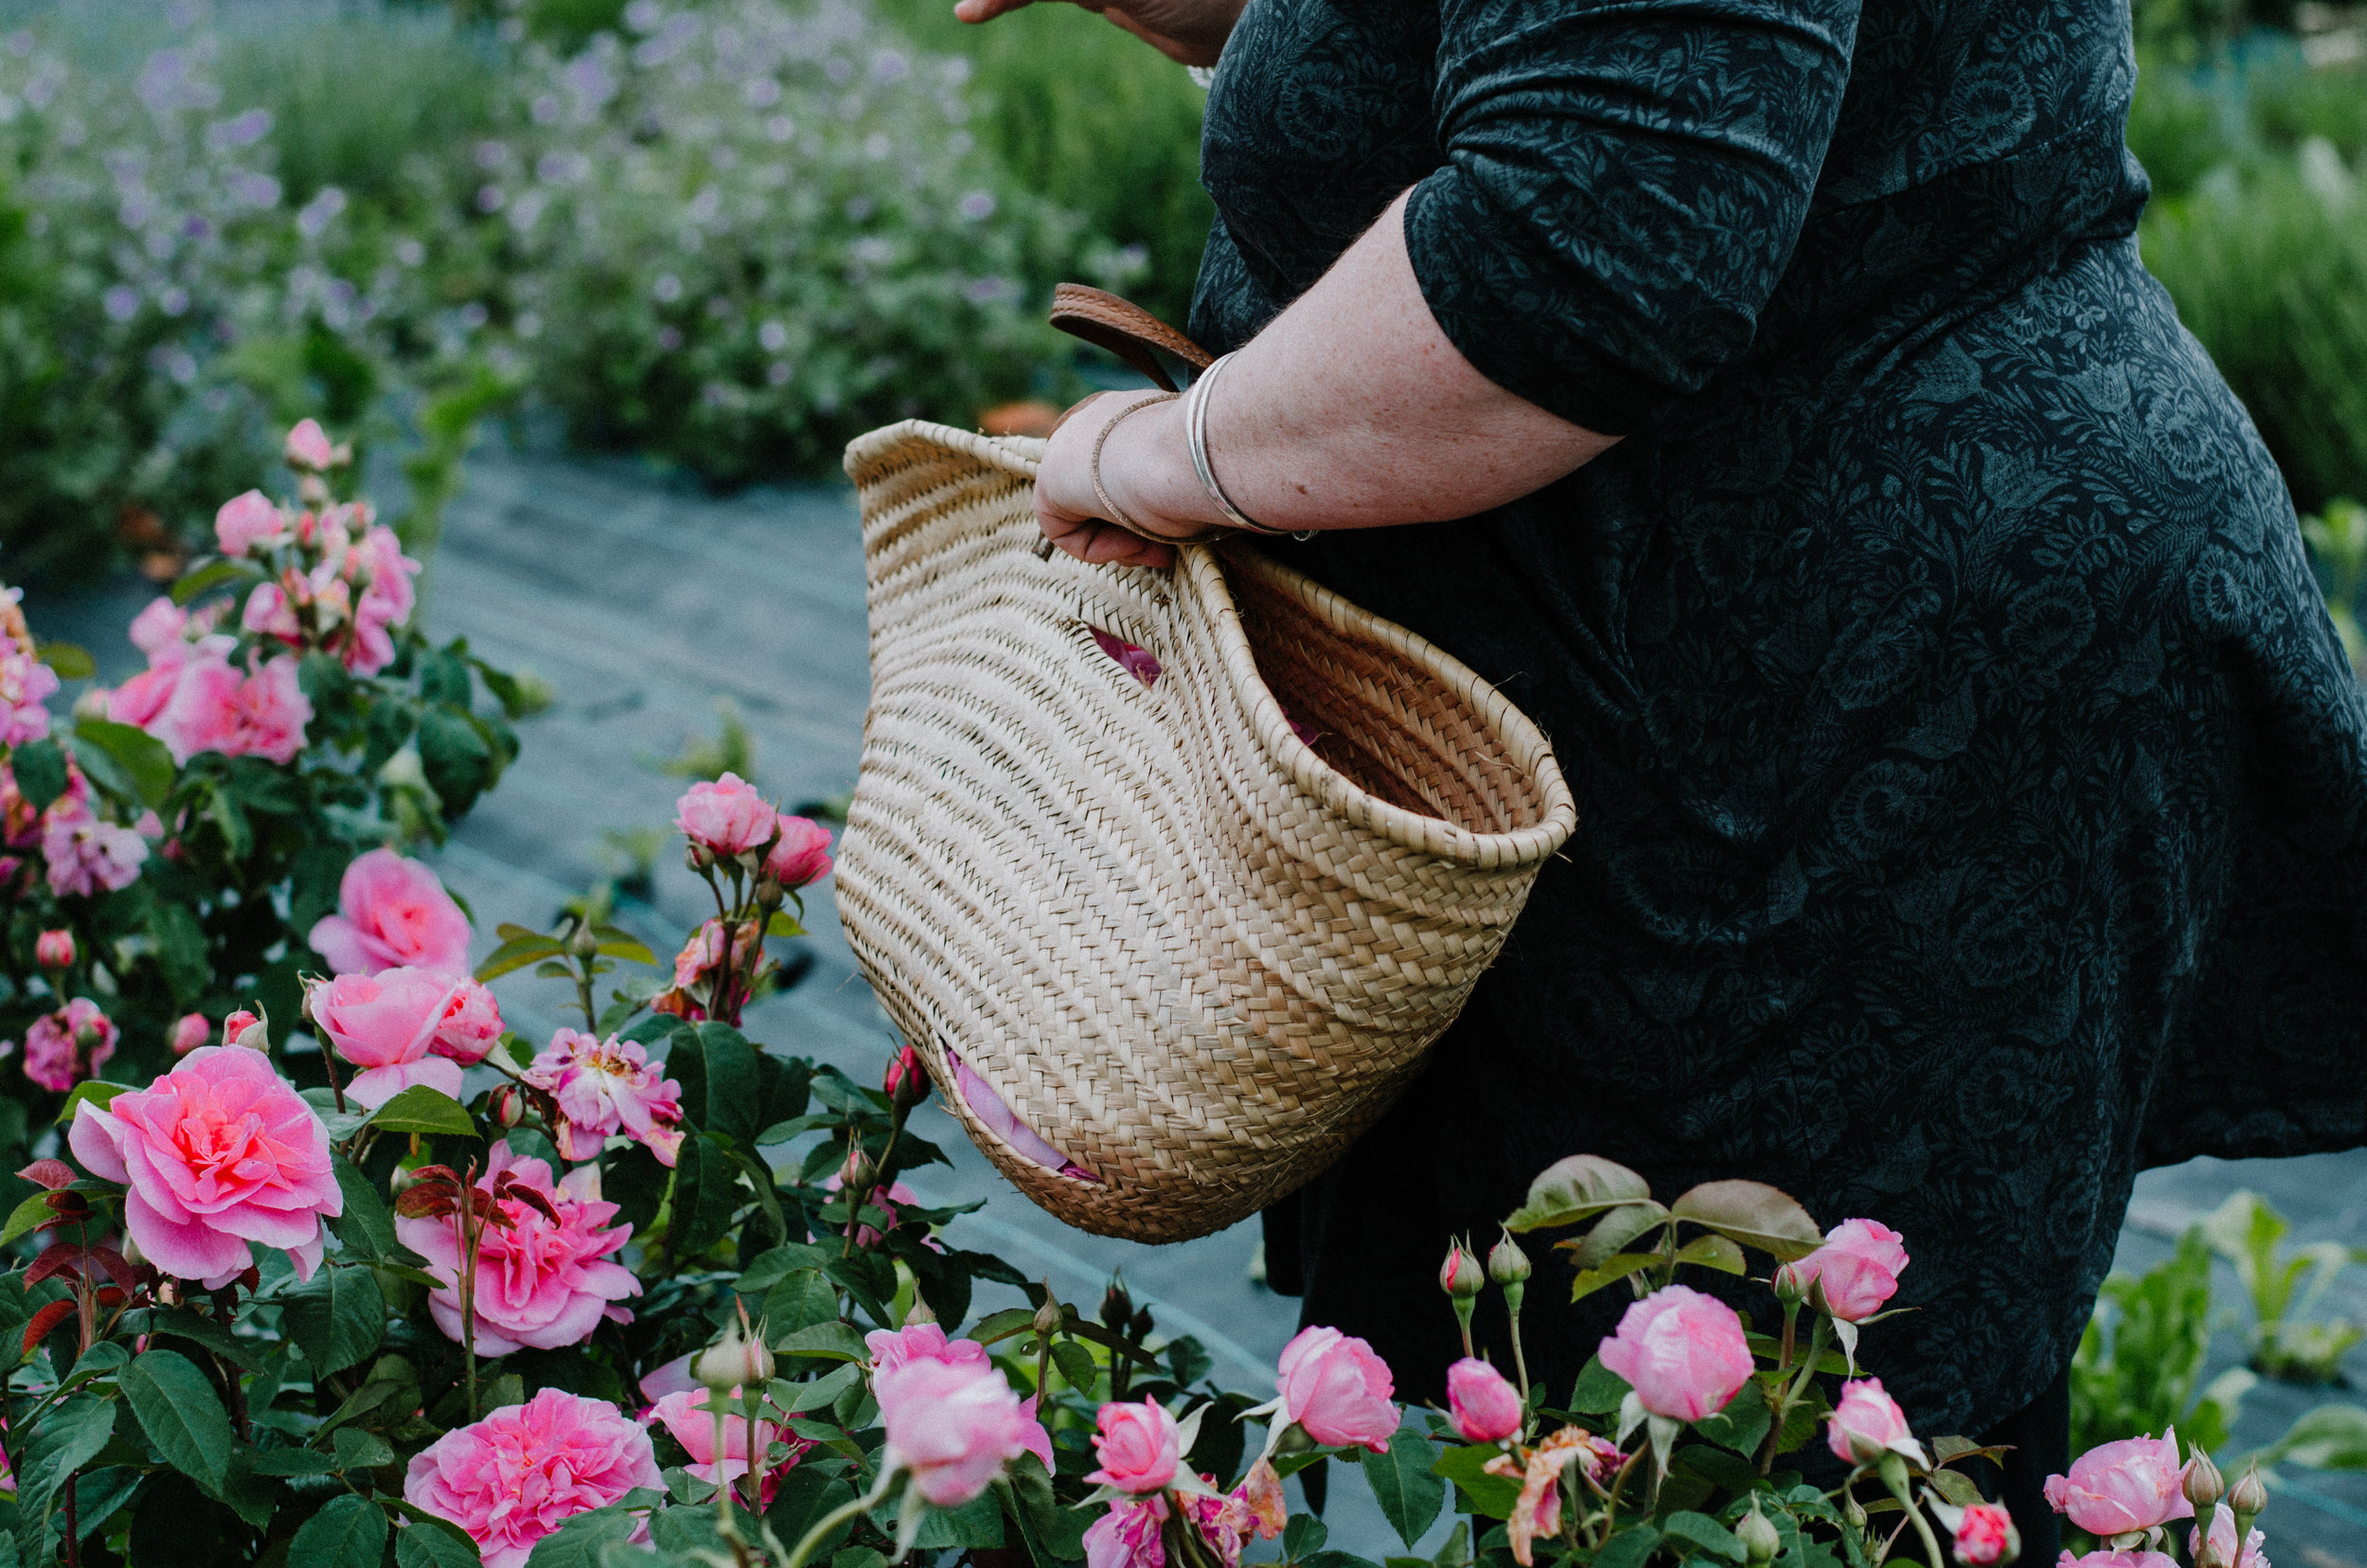 Fierce Botanics - Rose Picking - Aiste Saulyte Photography-40.jpg